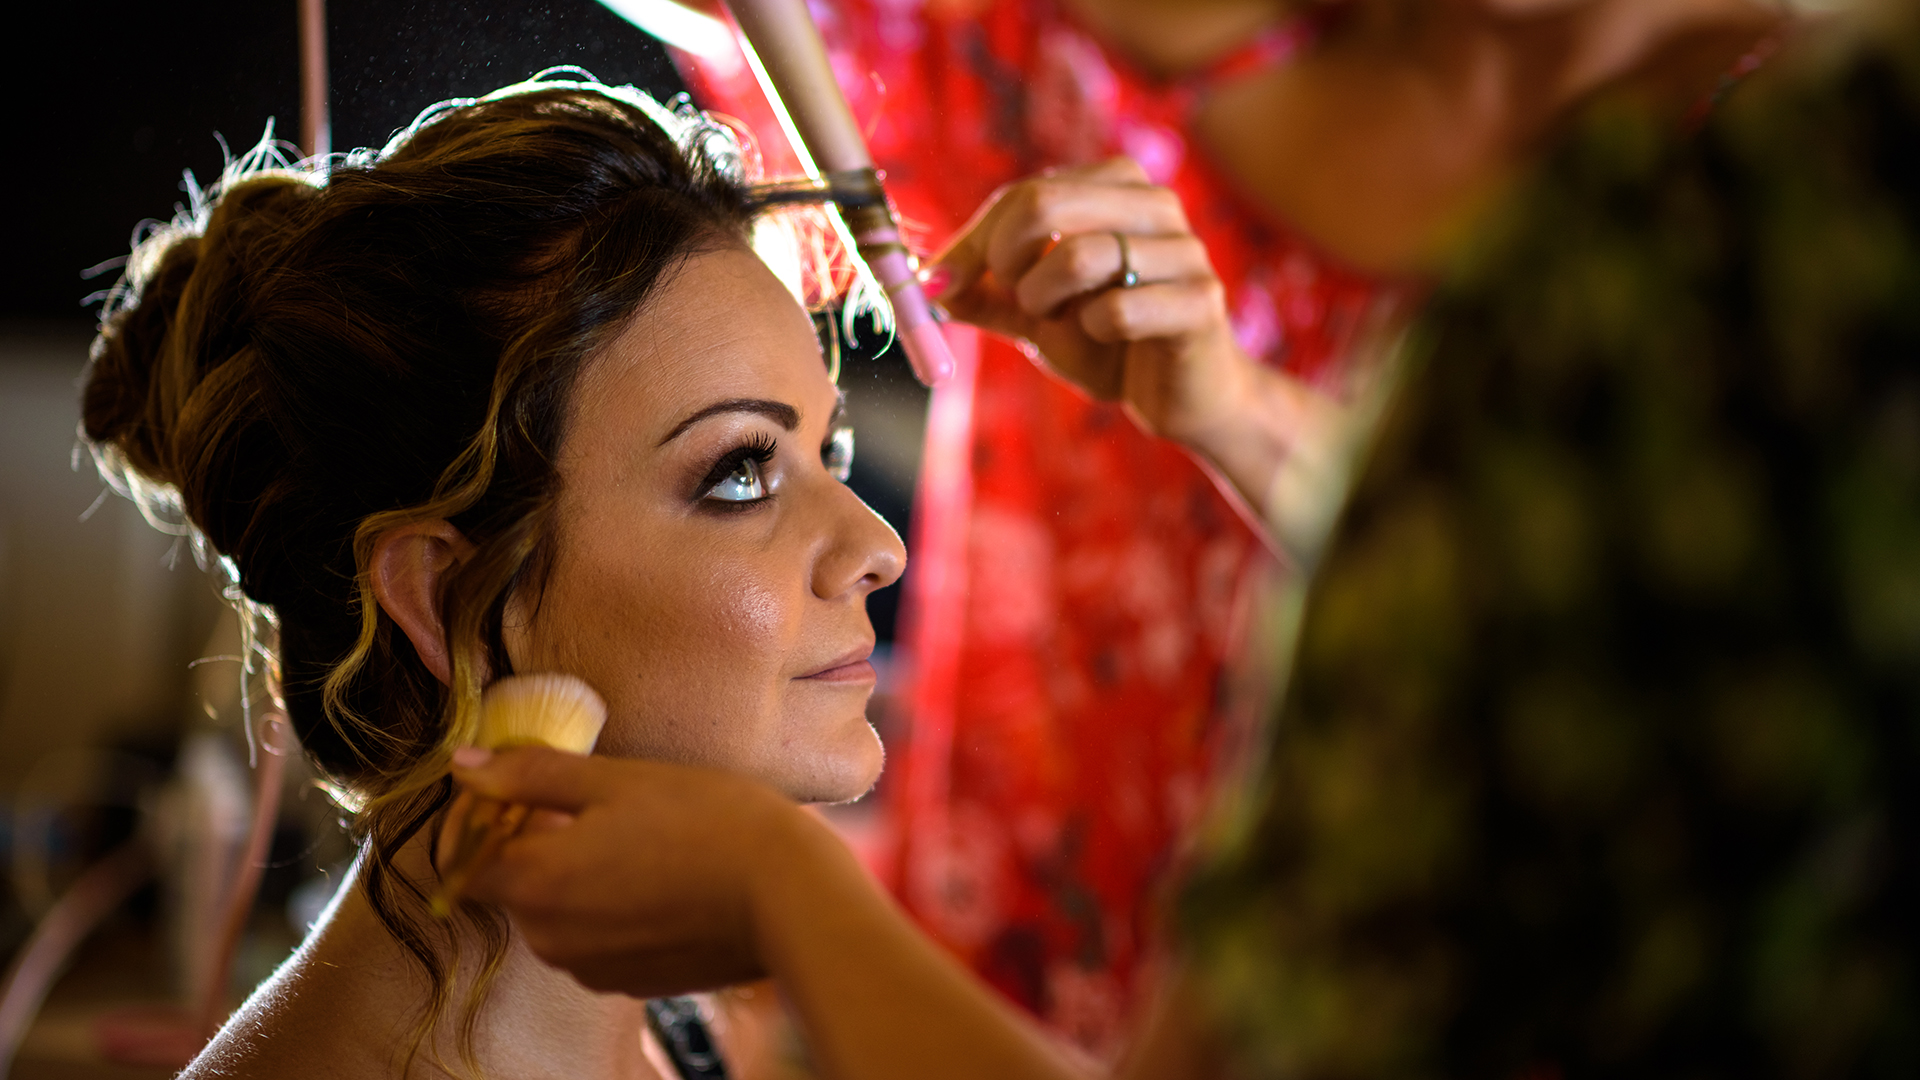 Our bride is being glammed up on her special day.  Turtle Bay Resort, North Shore, Hawaii.